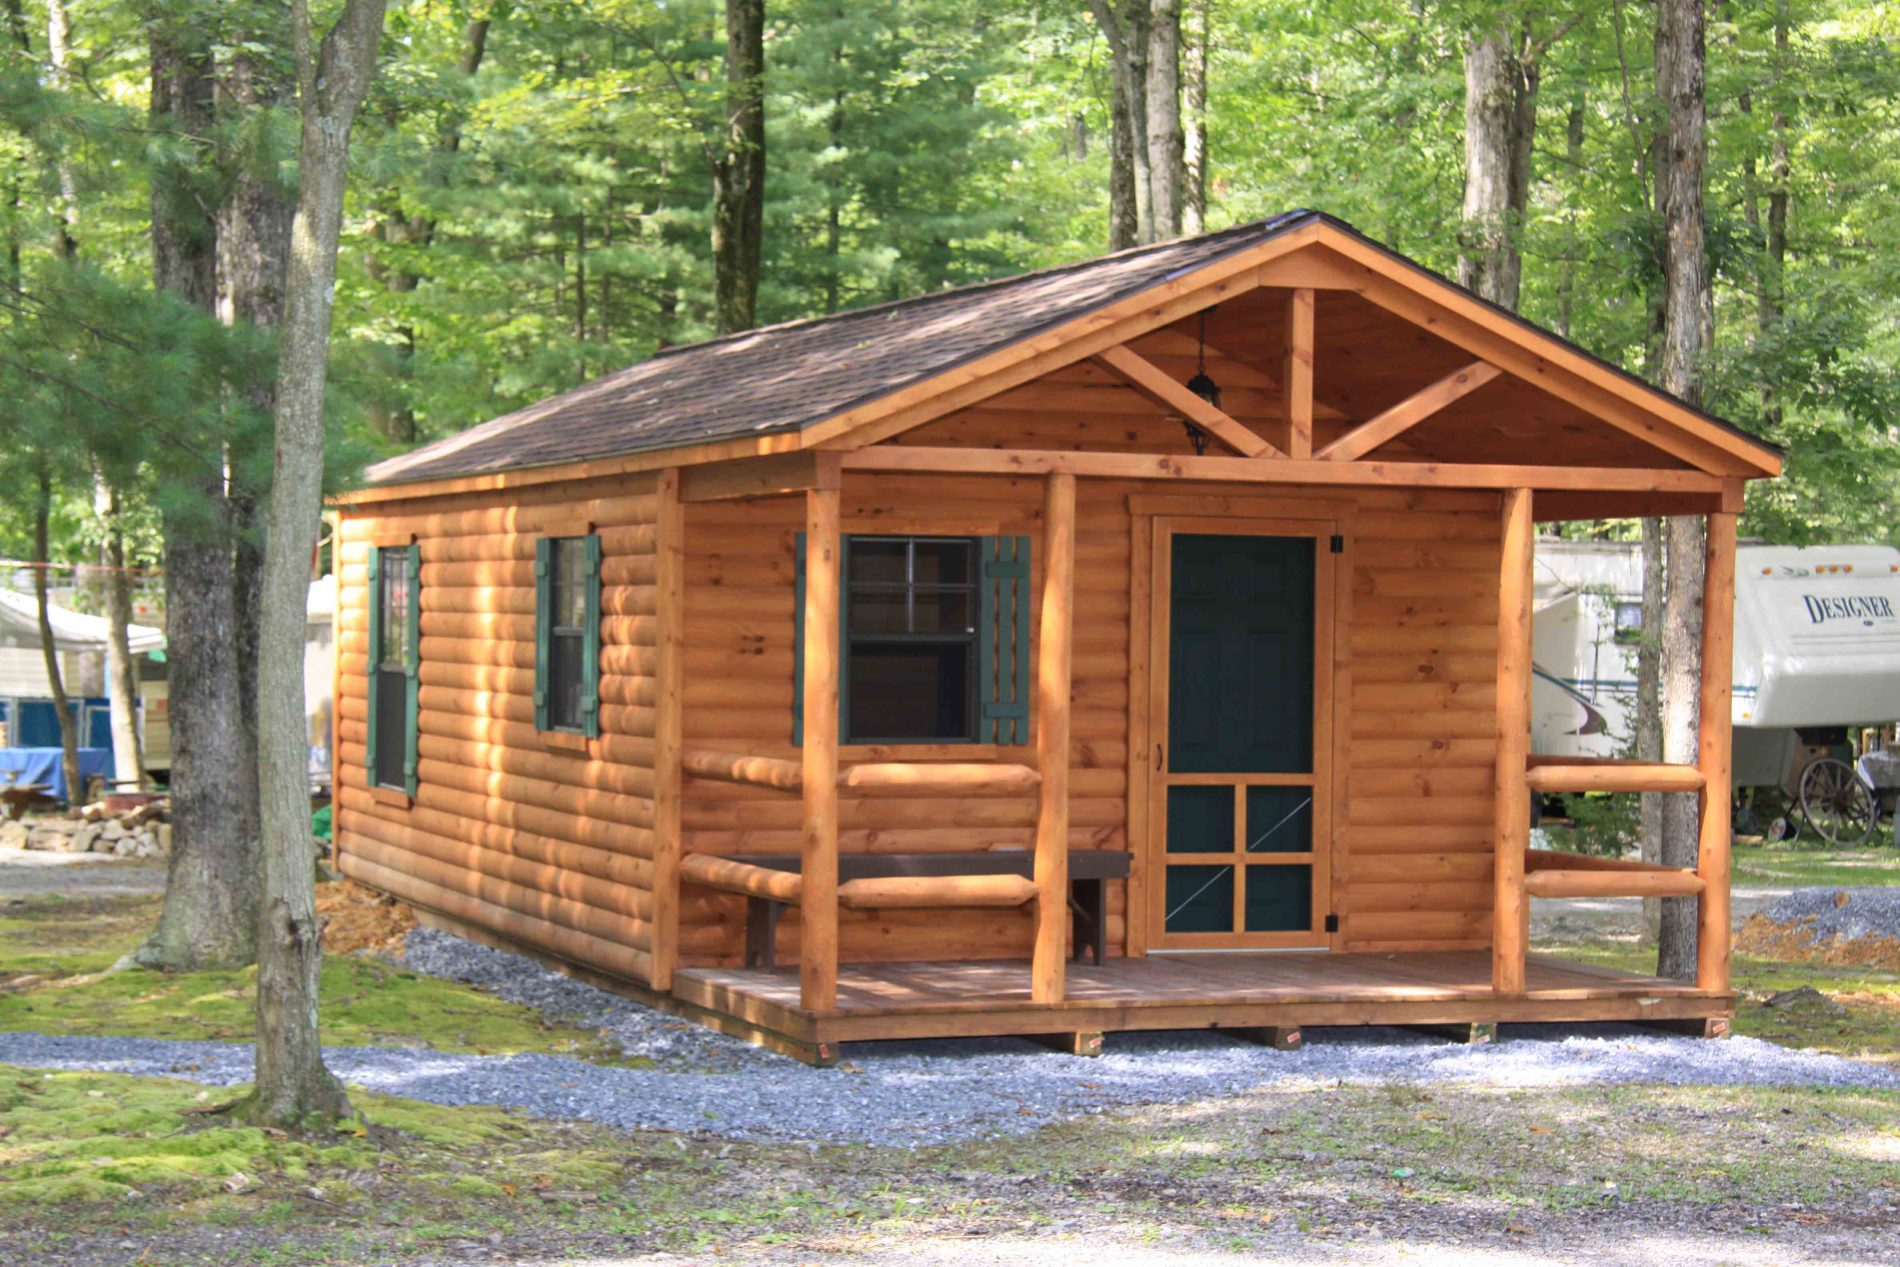 Campground cabins rustic log cabins for sale zook cabins for Large cabin kits